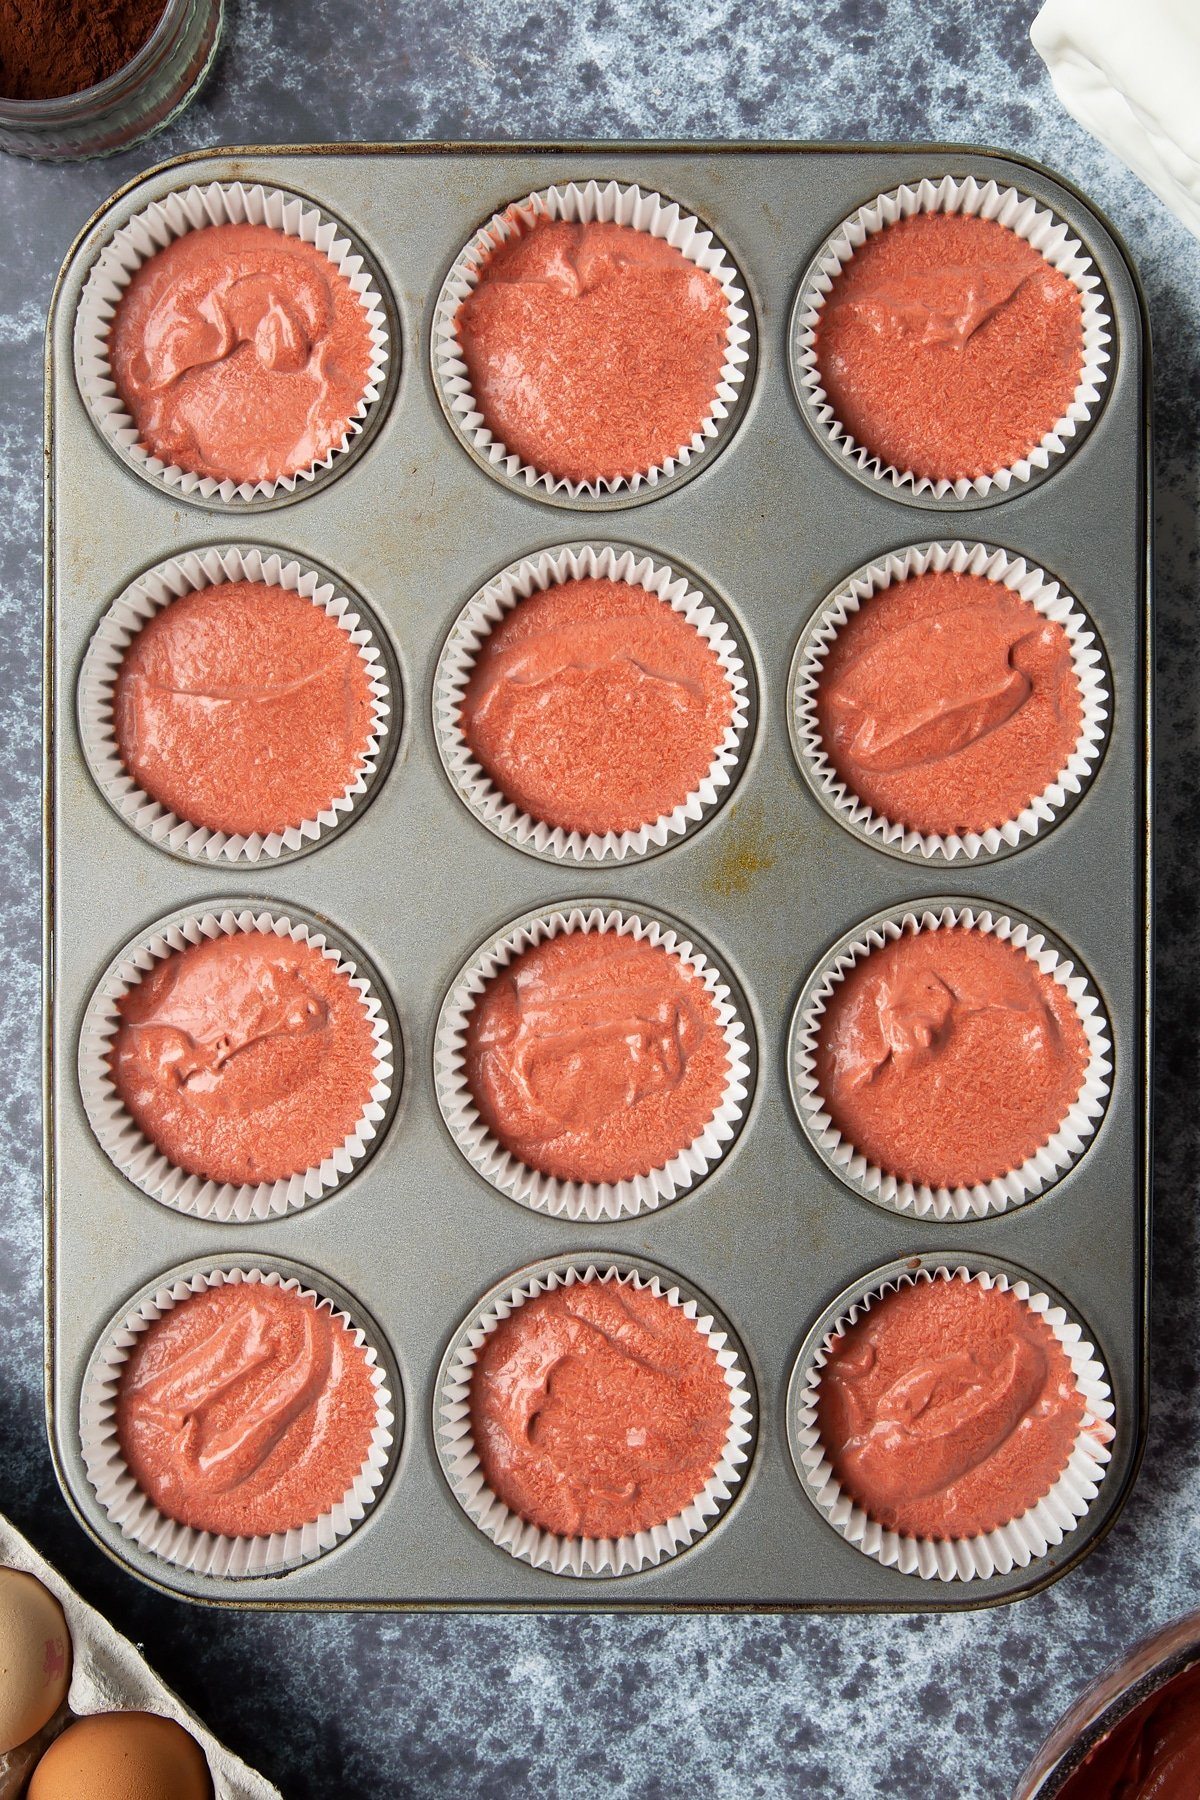 Lined 12-hole muffin tray filled with dairy free red velvet cupcake batter. Ingredients to make dairy free Halloween cupcakes surround the tray.